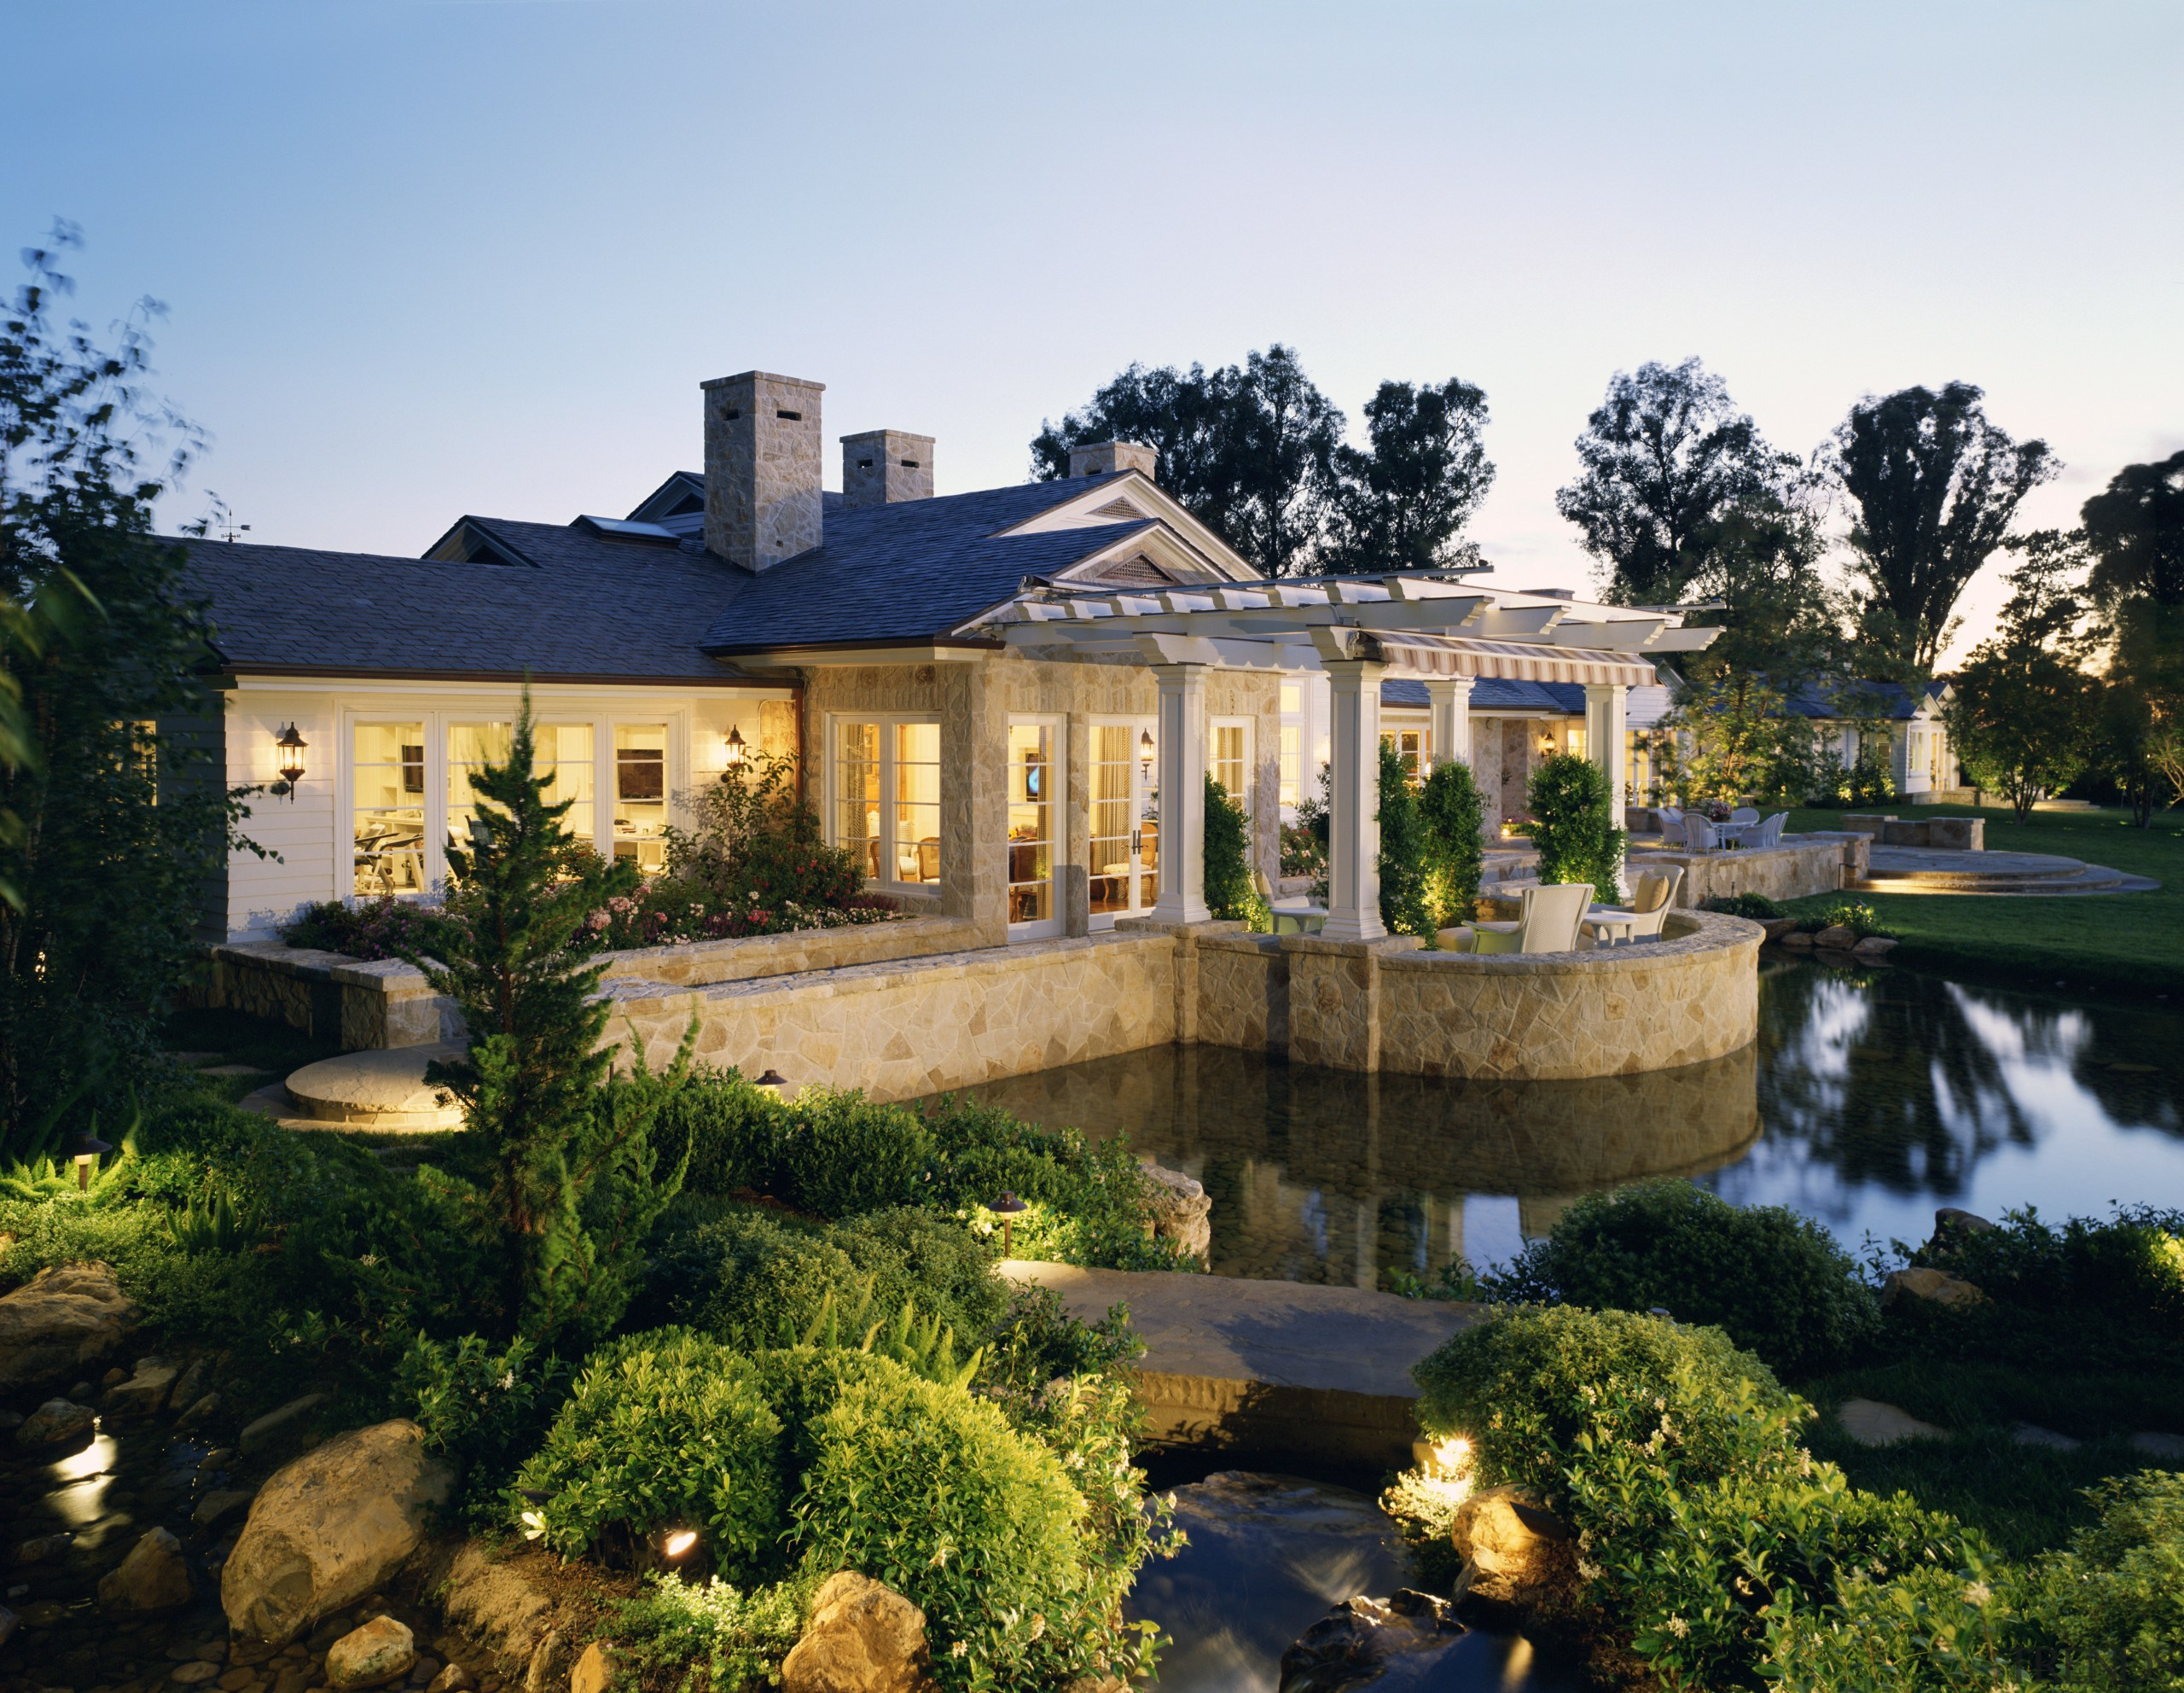 View of exterior features surrounding gardens & pond backyard, cottage, estate, garden, hacienda, home, house, landscape, landscape lighting, landscaping, lighting, mansion, outdoor structure, property, real estate, reflection, residential area, resort, roof, villa, yard